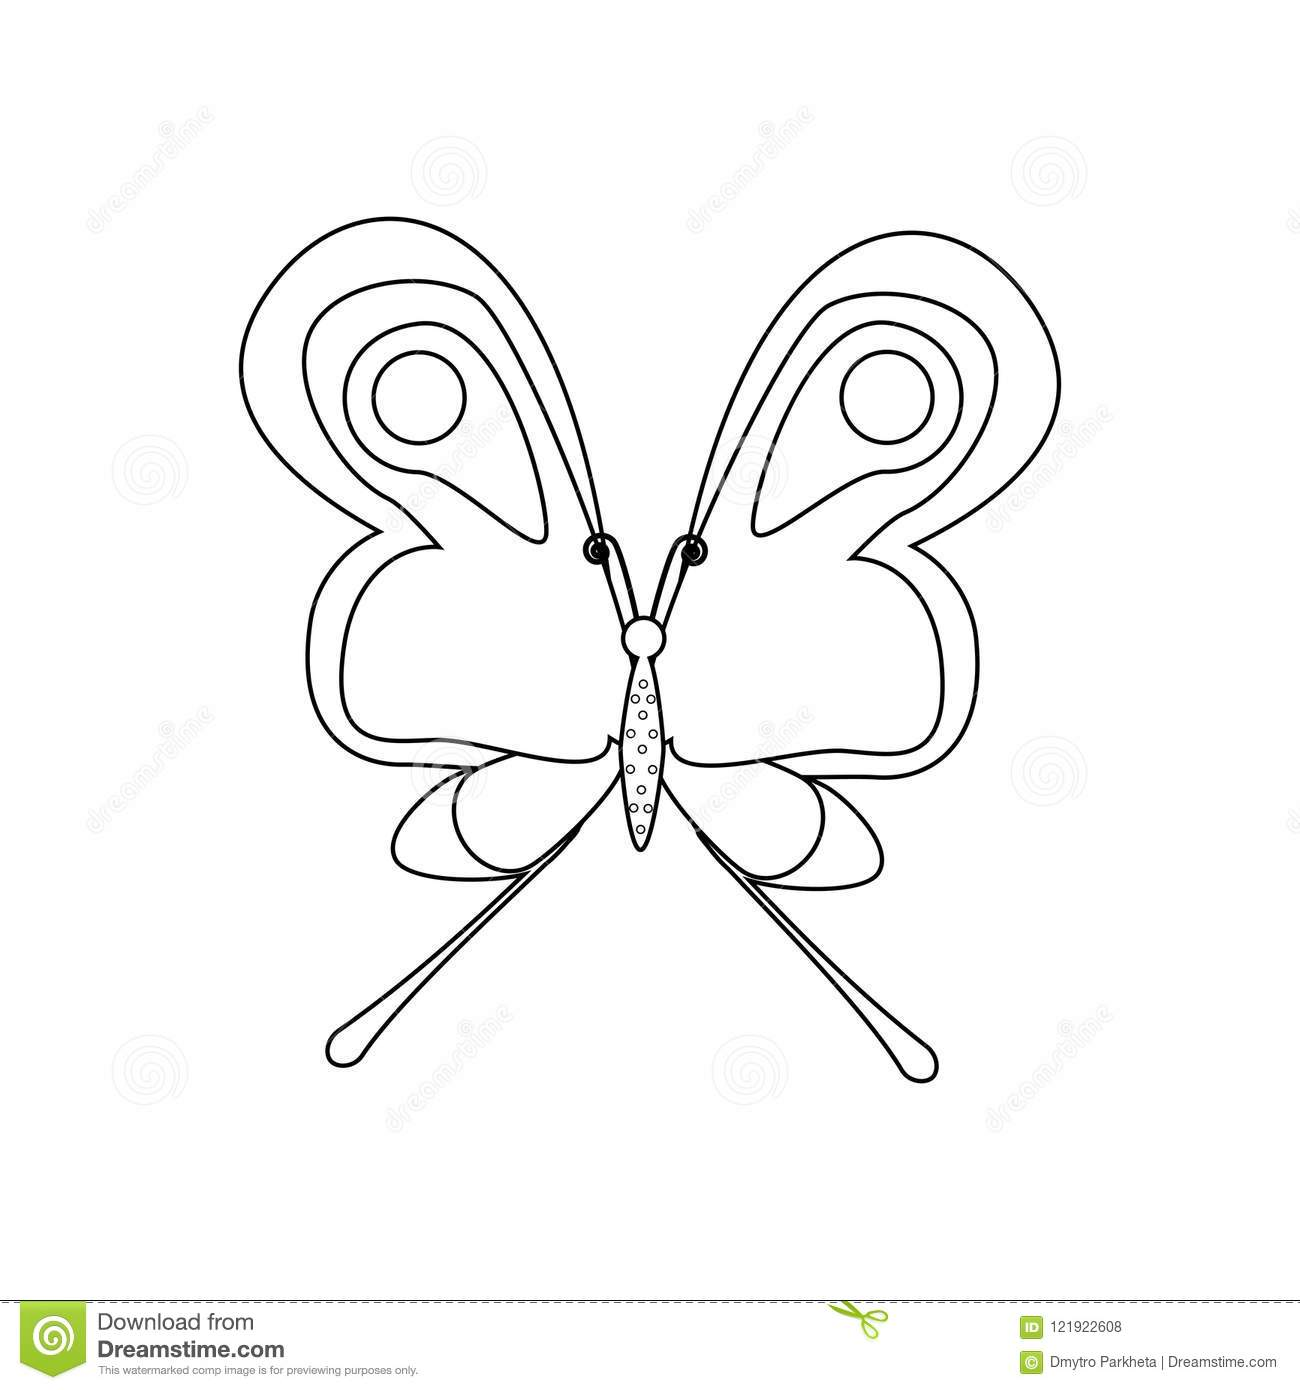 Butterfly Coloring Pages for Kids, 100 Images. Print for Free! | 1390x1300